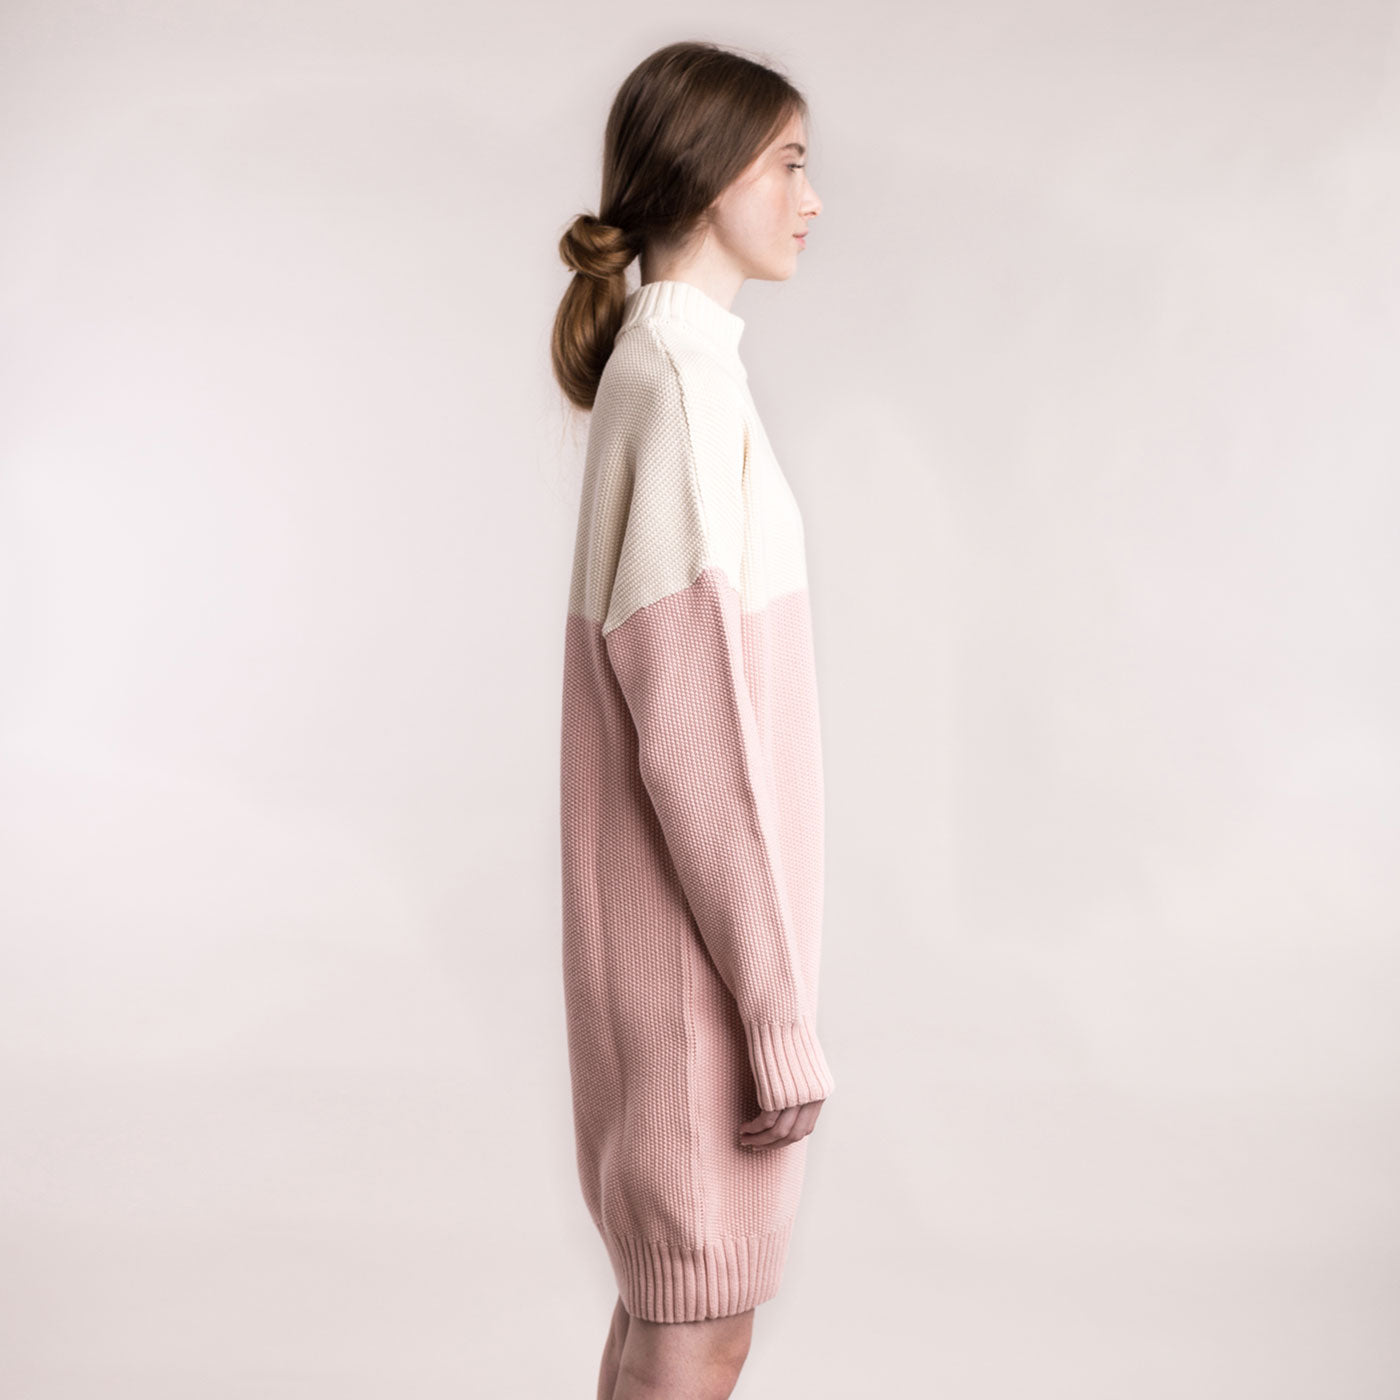 The model wears a cream and dusty pink, sustainable organic cotton, knitted double-colour dress, side view.